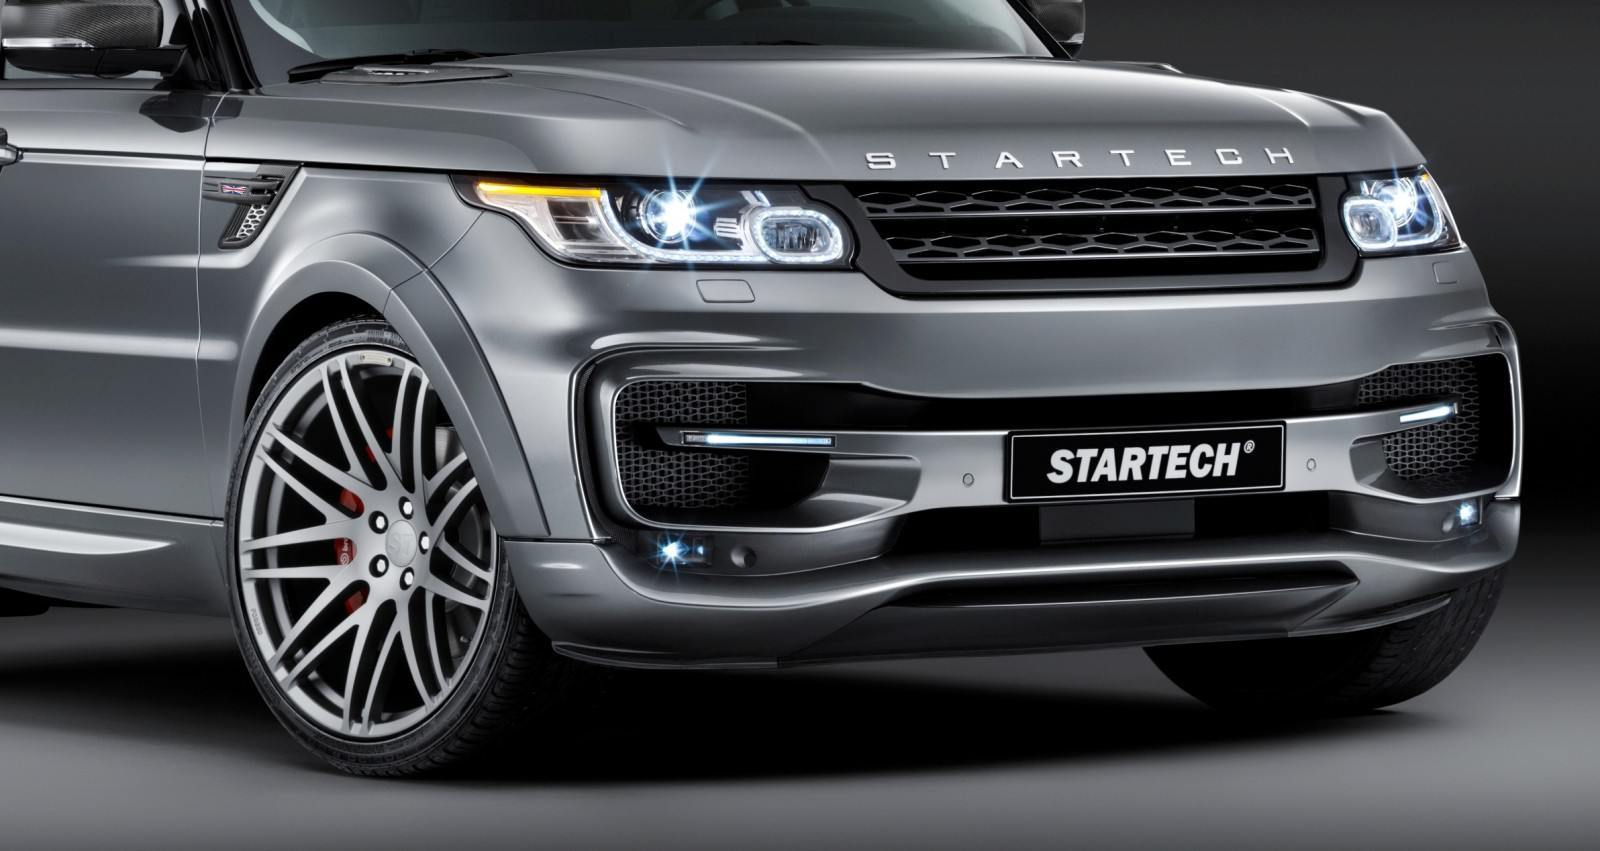 2014 Range Rover Sport STARTECH Widebody on 23-Inch Wheels Looks Amazing 5